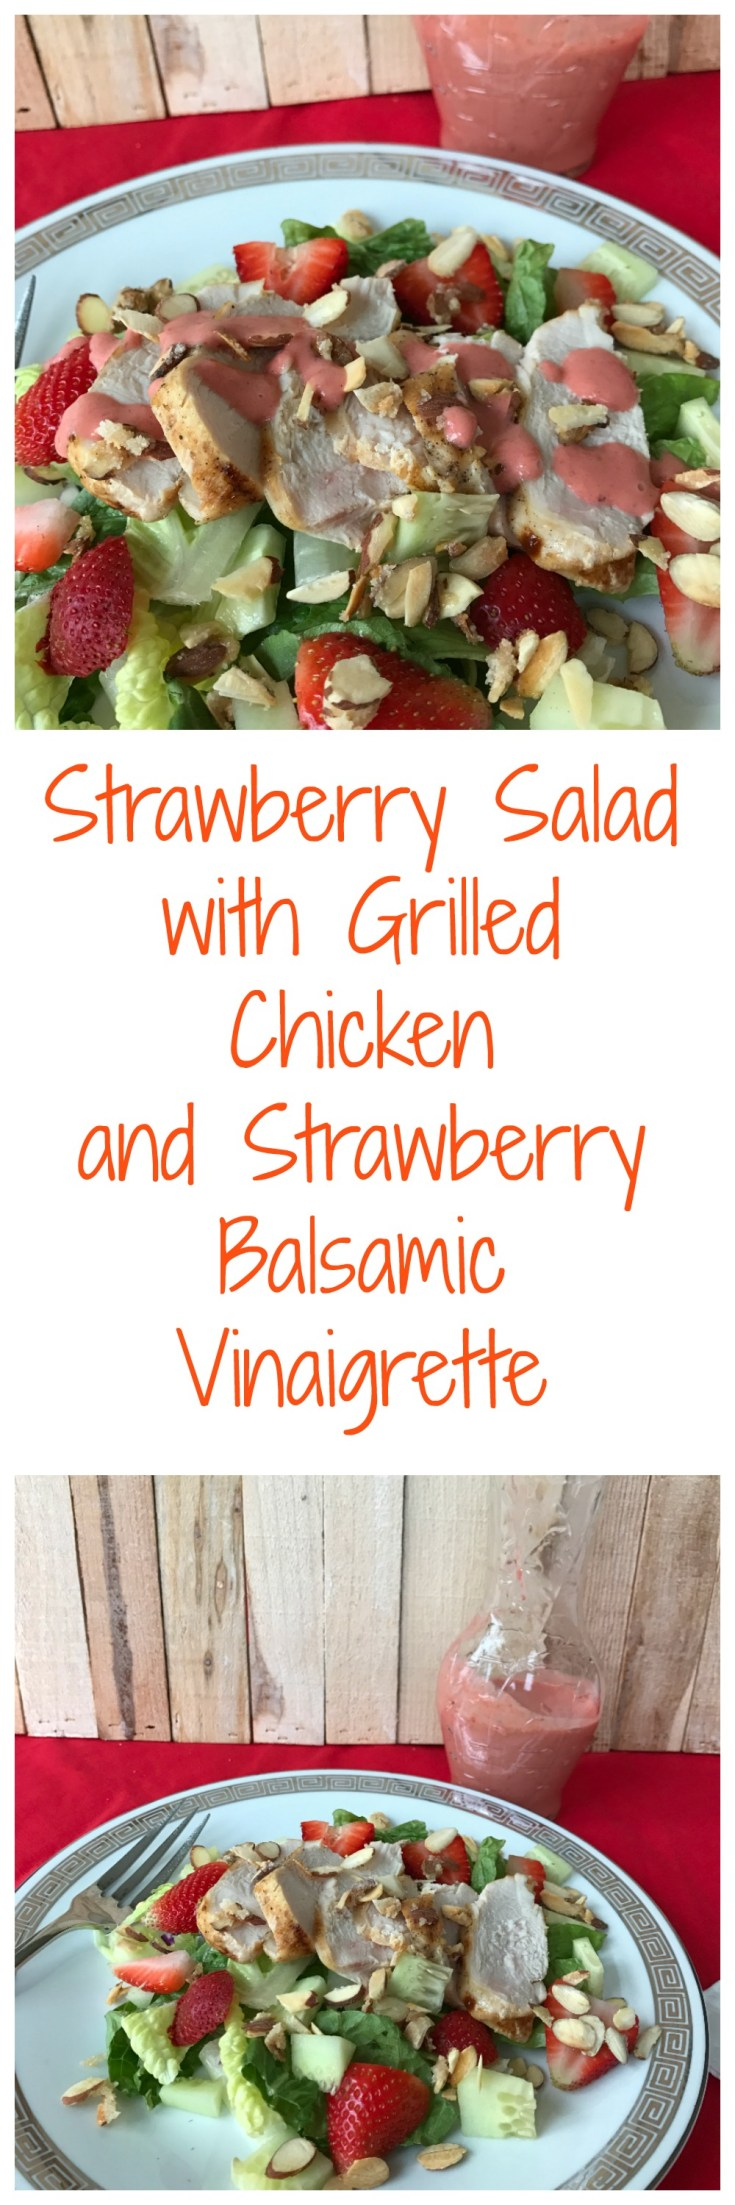 Strawberry Salad with Grilled Chicken and Strawberry Balsamic Vinaigrette is a delicious weekend lunch.